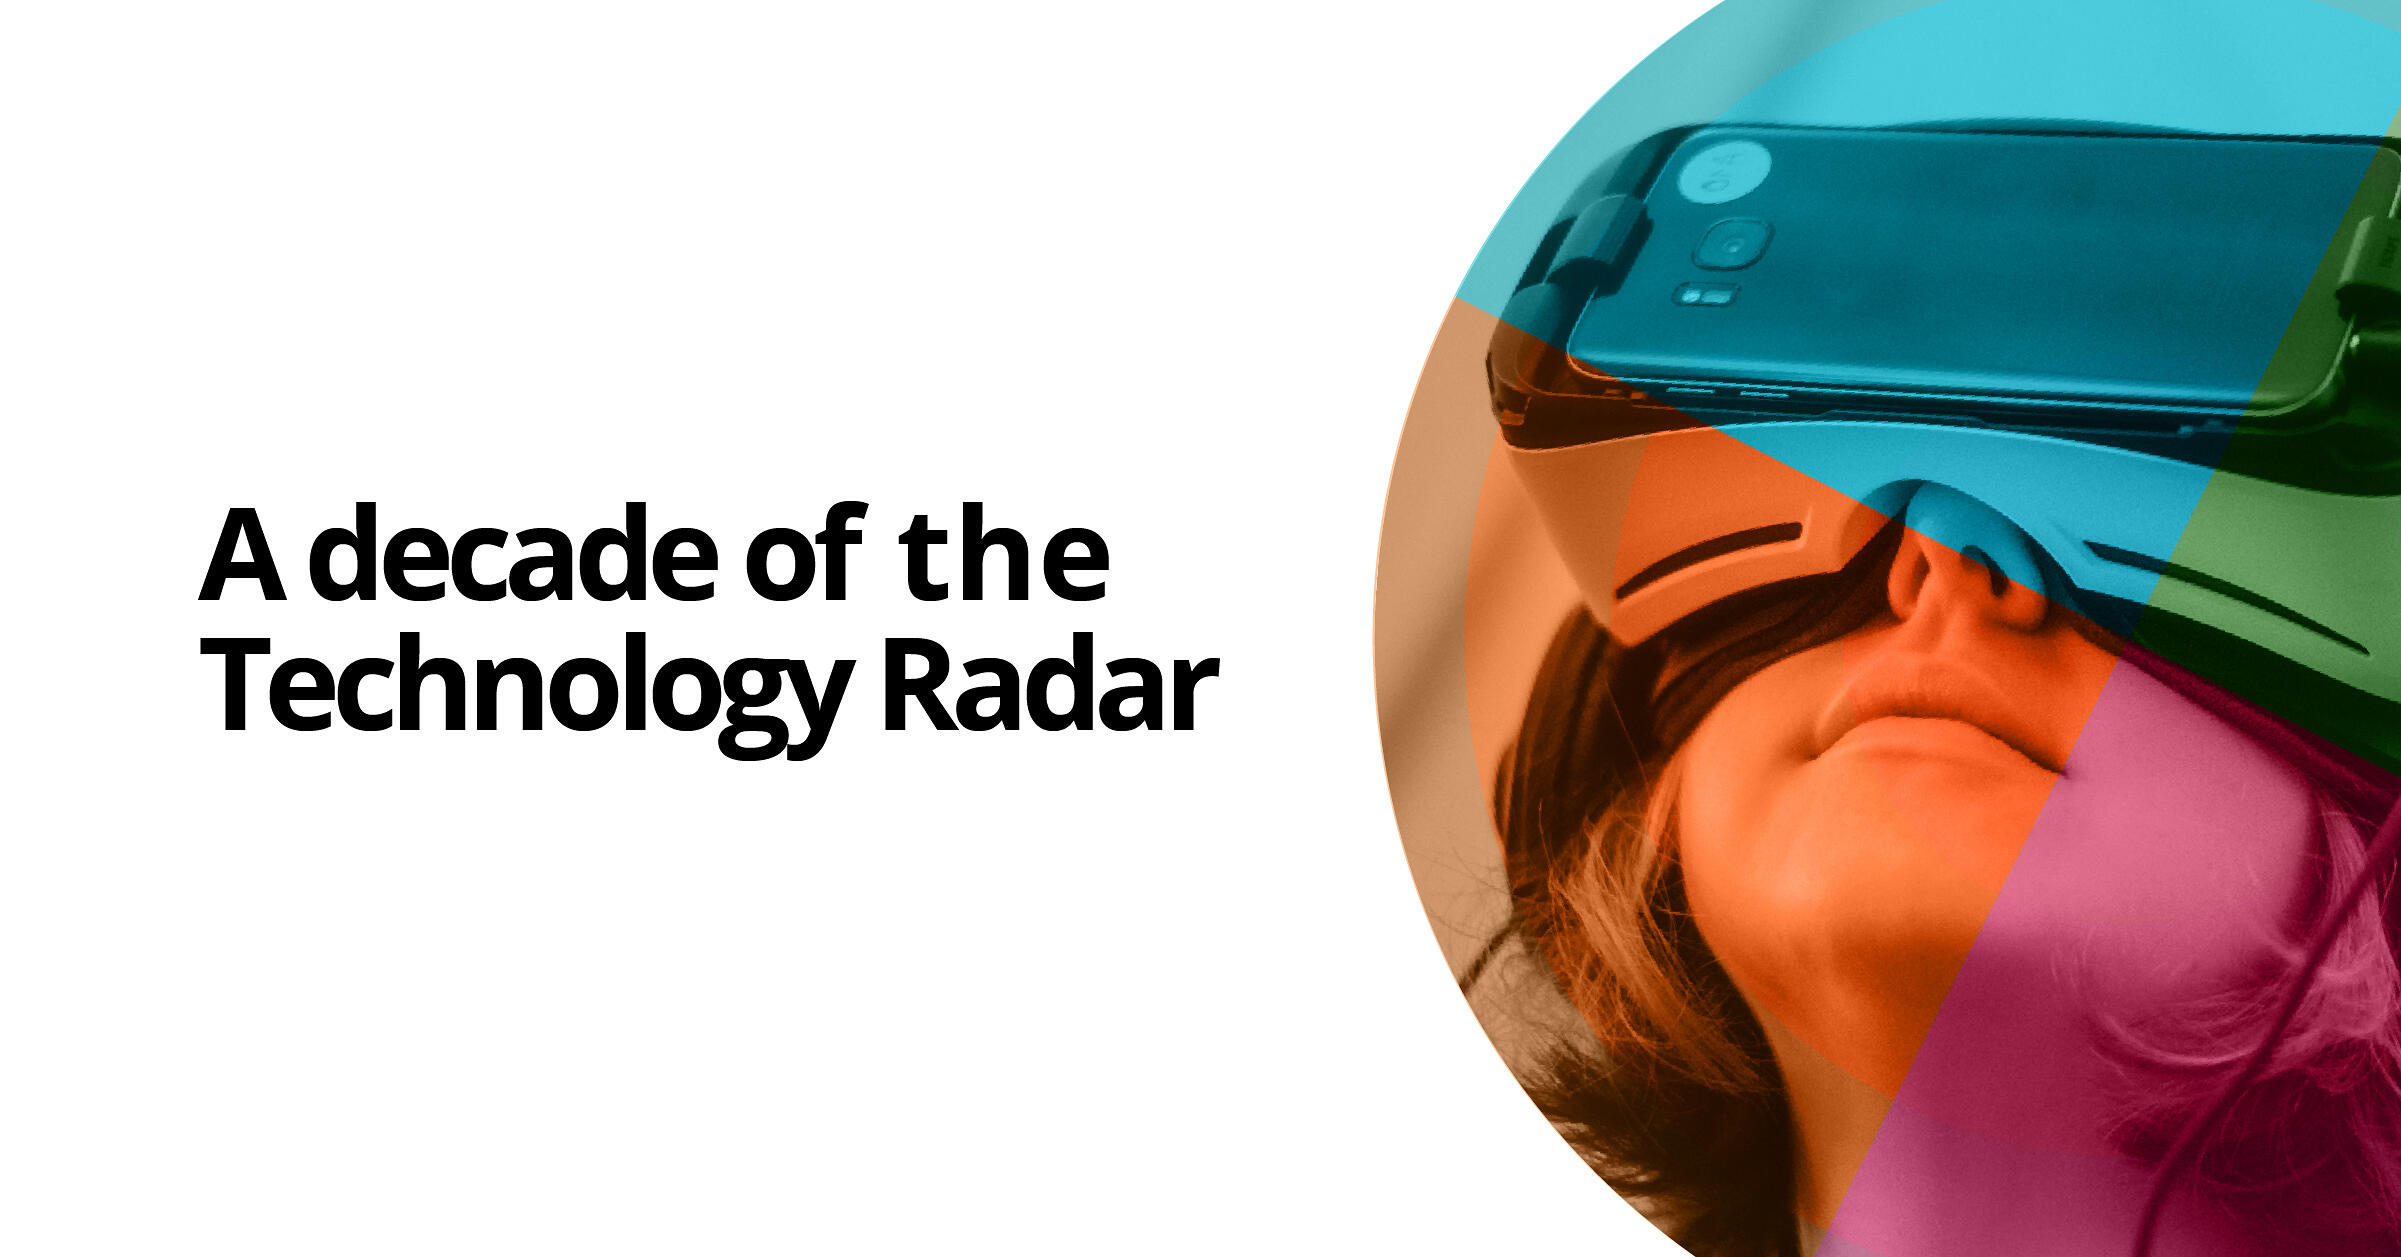 10 Years of the Technology Radar